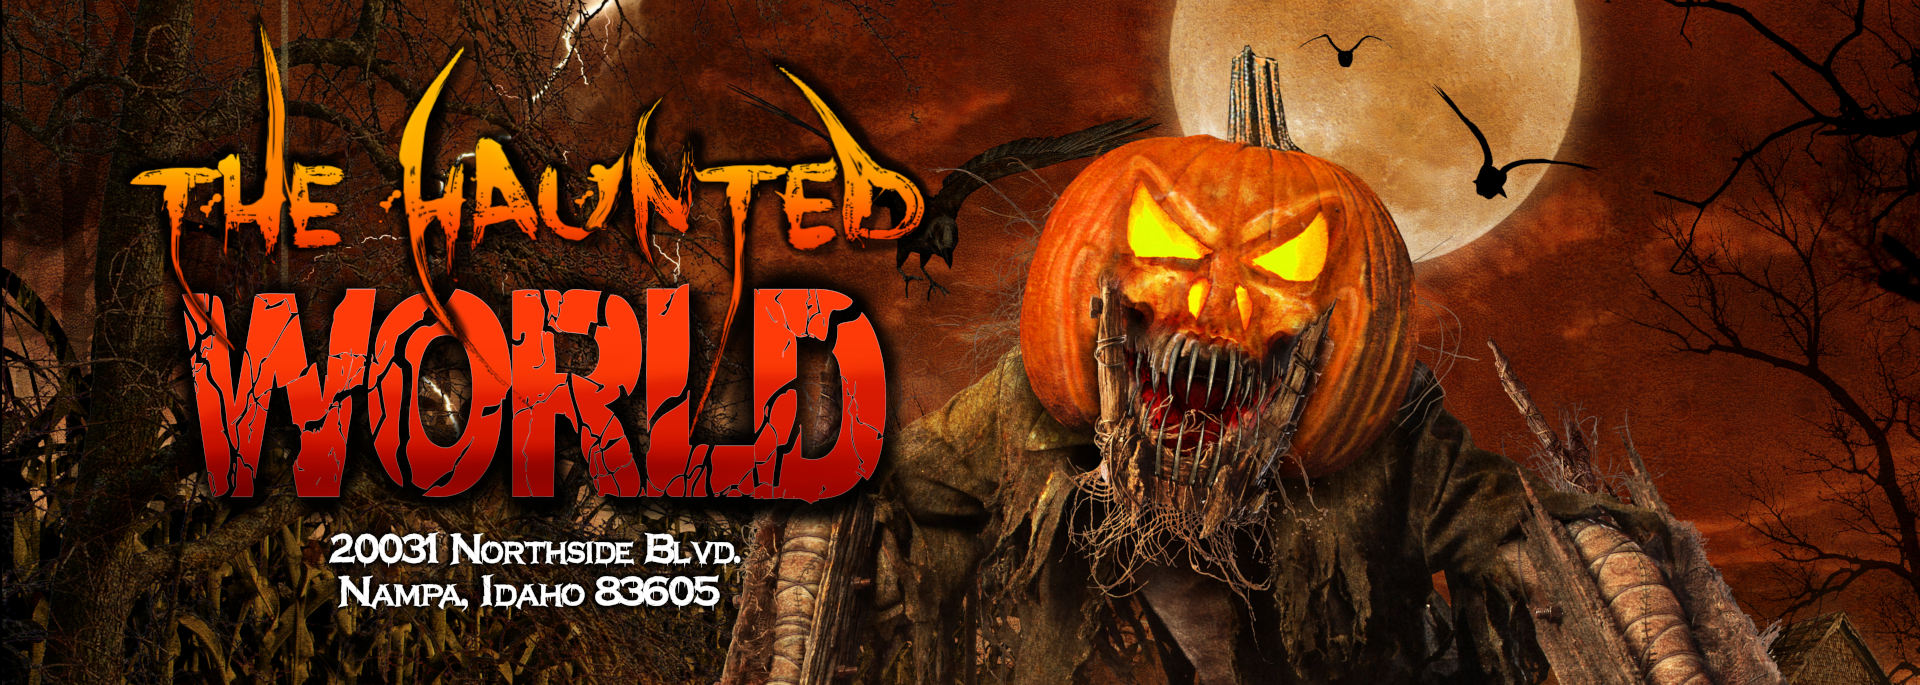 Idaho Haunted House - The Haunted World